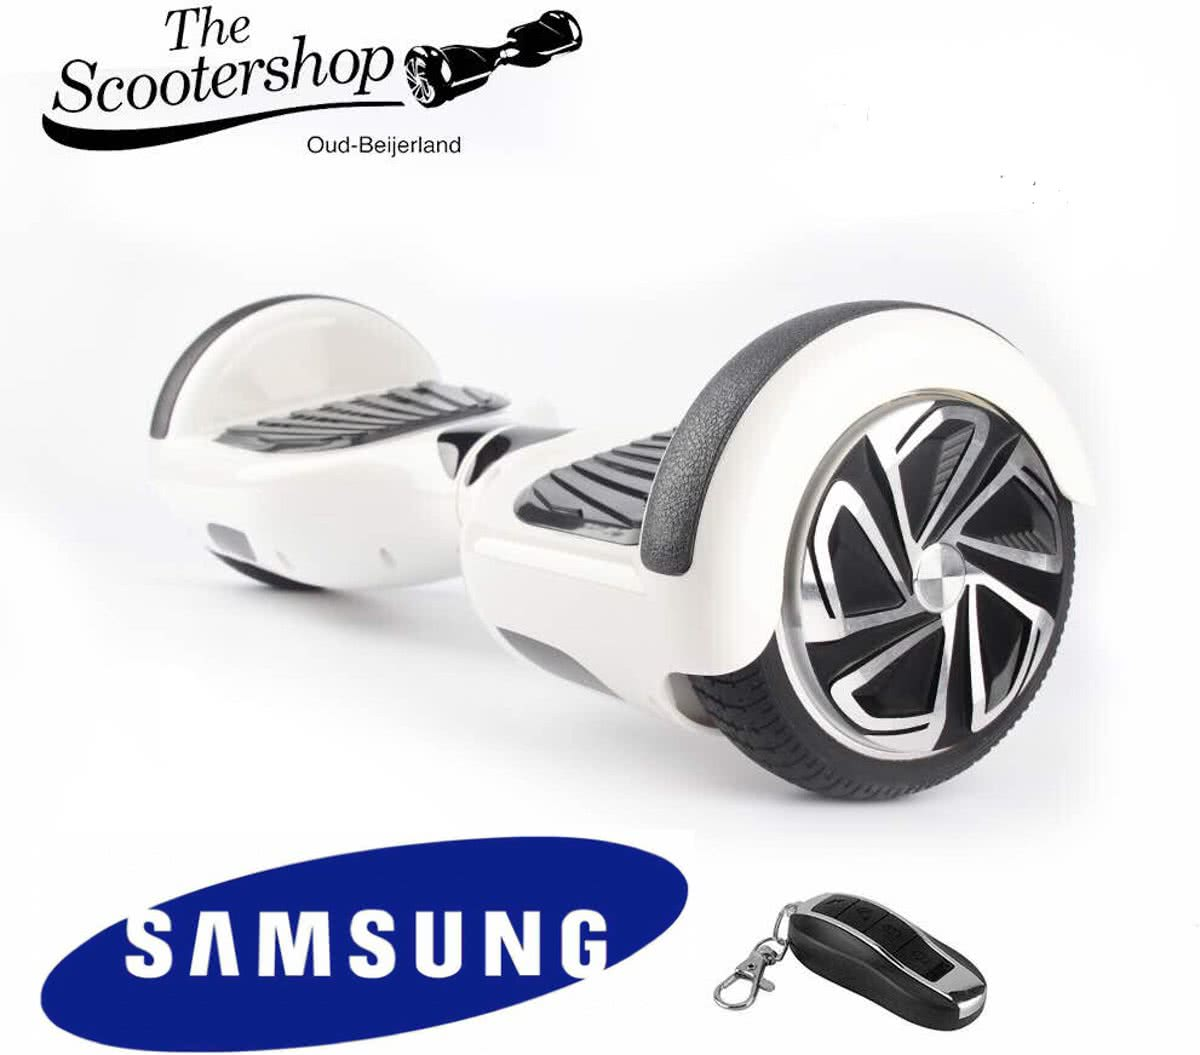 The Scootershop - 700 Watt Hoverboard met afstandsbediening - taotao - 20cell Samsung - Wit